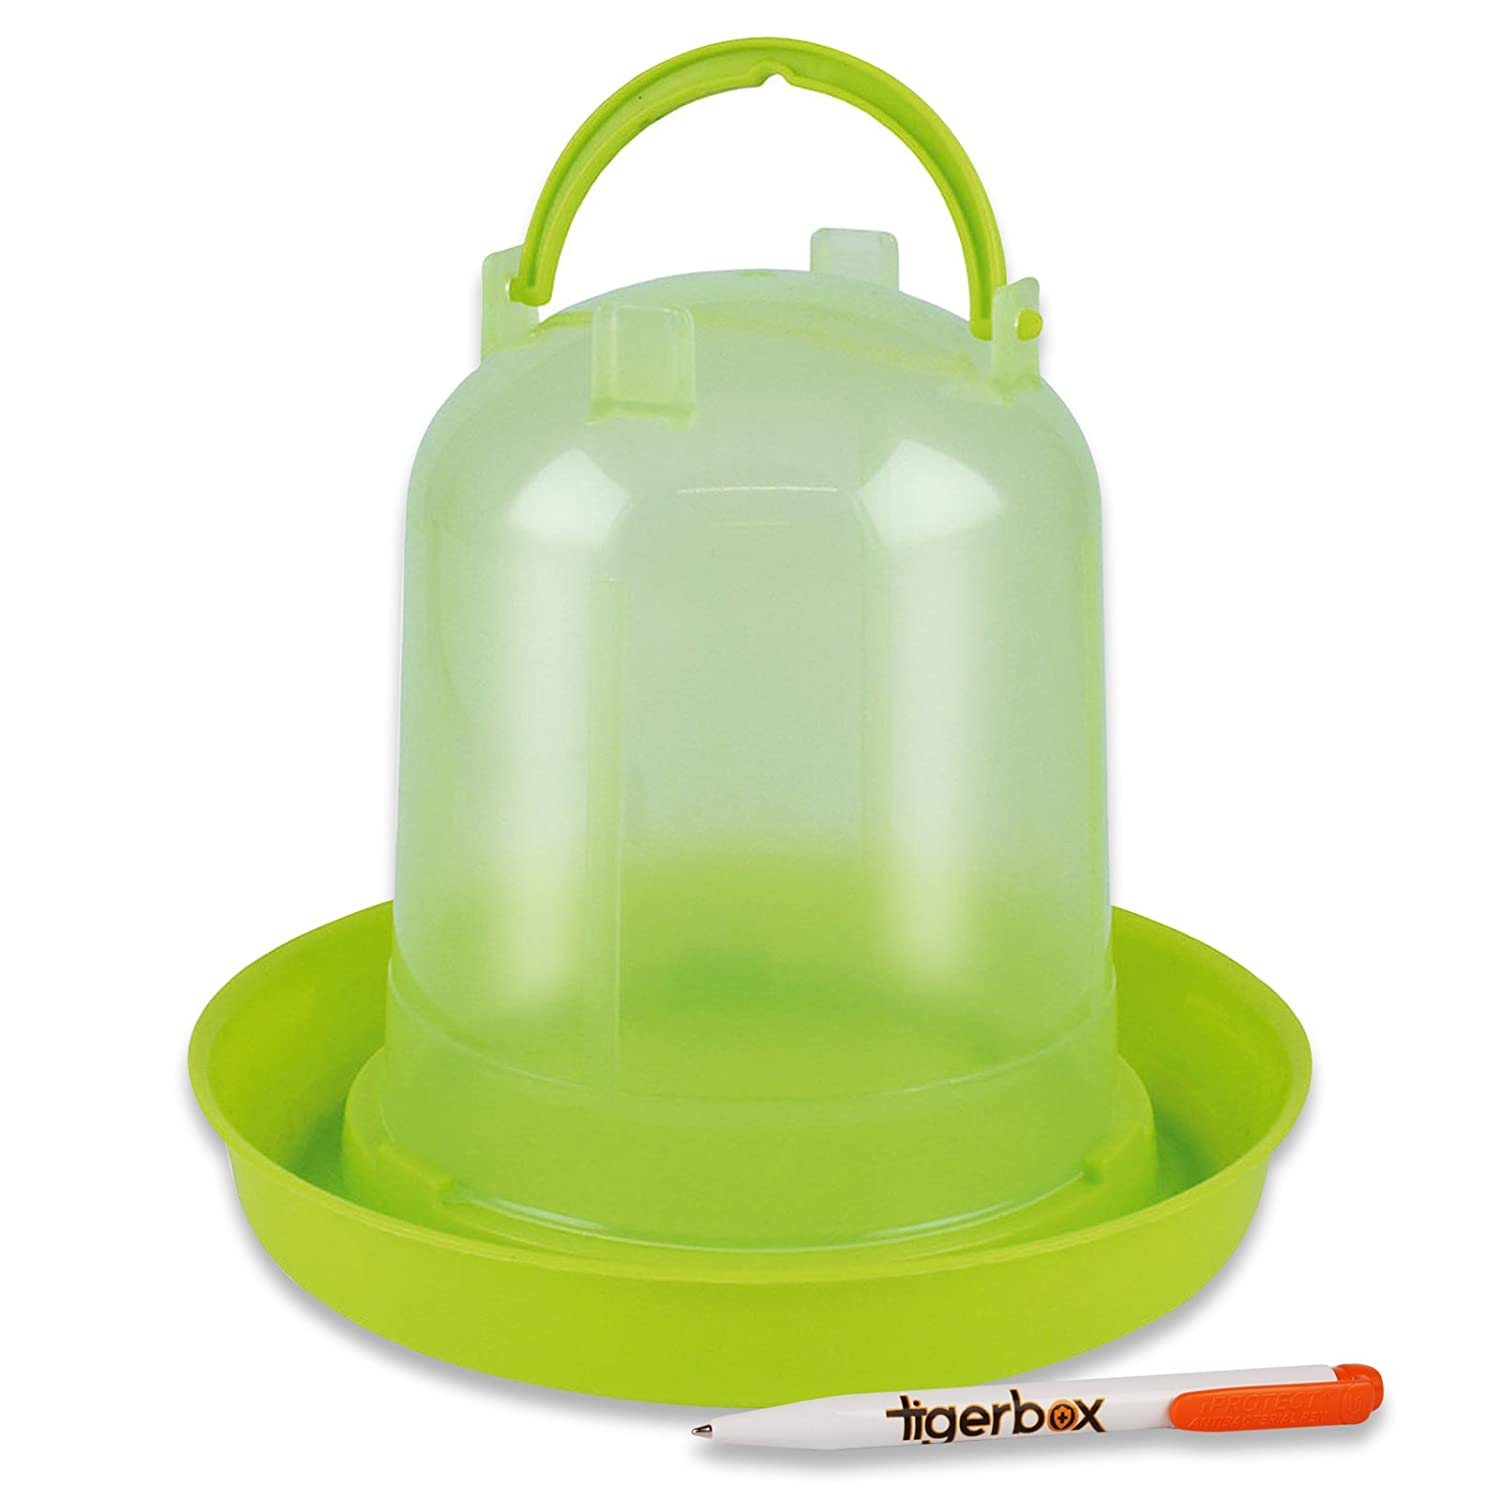 tigerbox Heavy Duty Plastic Hen Party Galley Pot Feeder Citrus Green Ideal for Pigeons Small Poultry